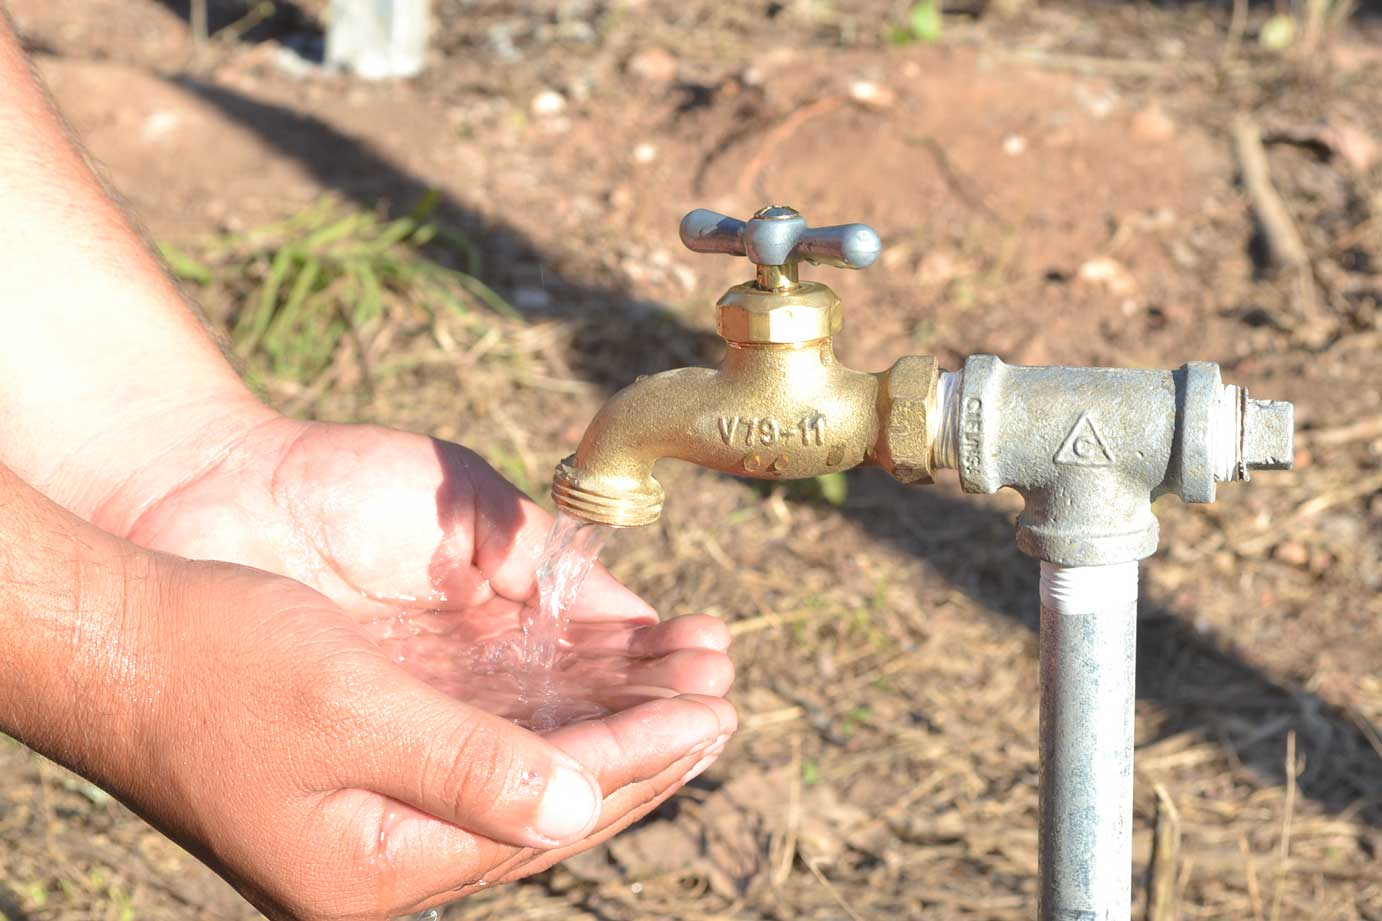 Water in communities thanks to a Solar Power Water System